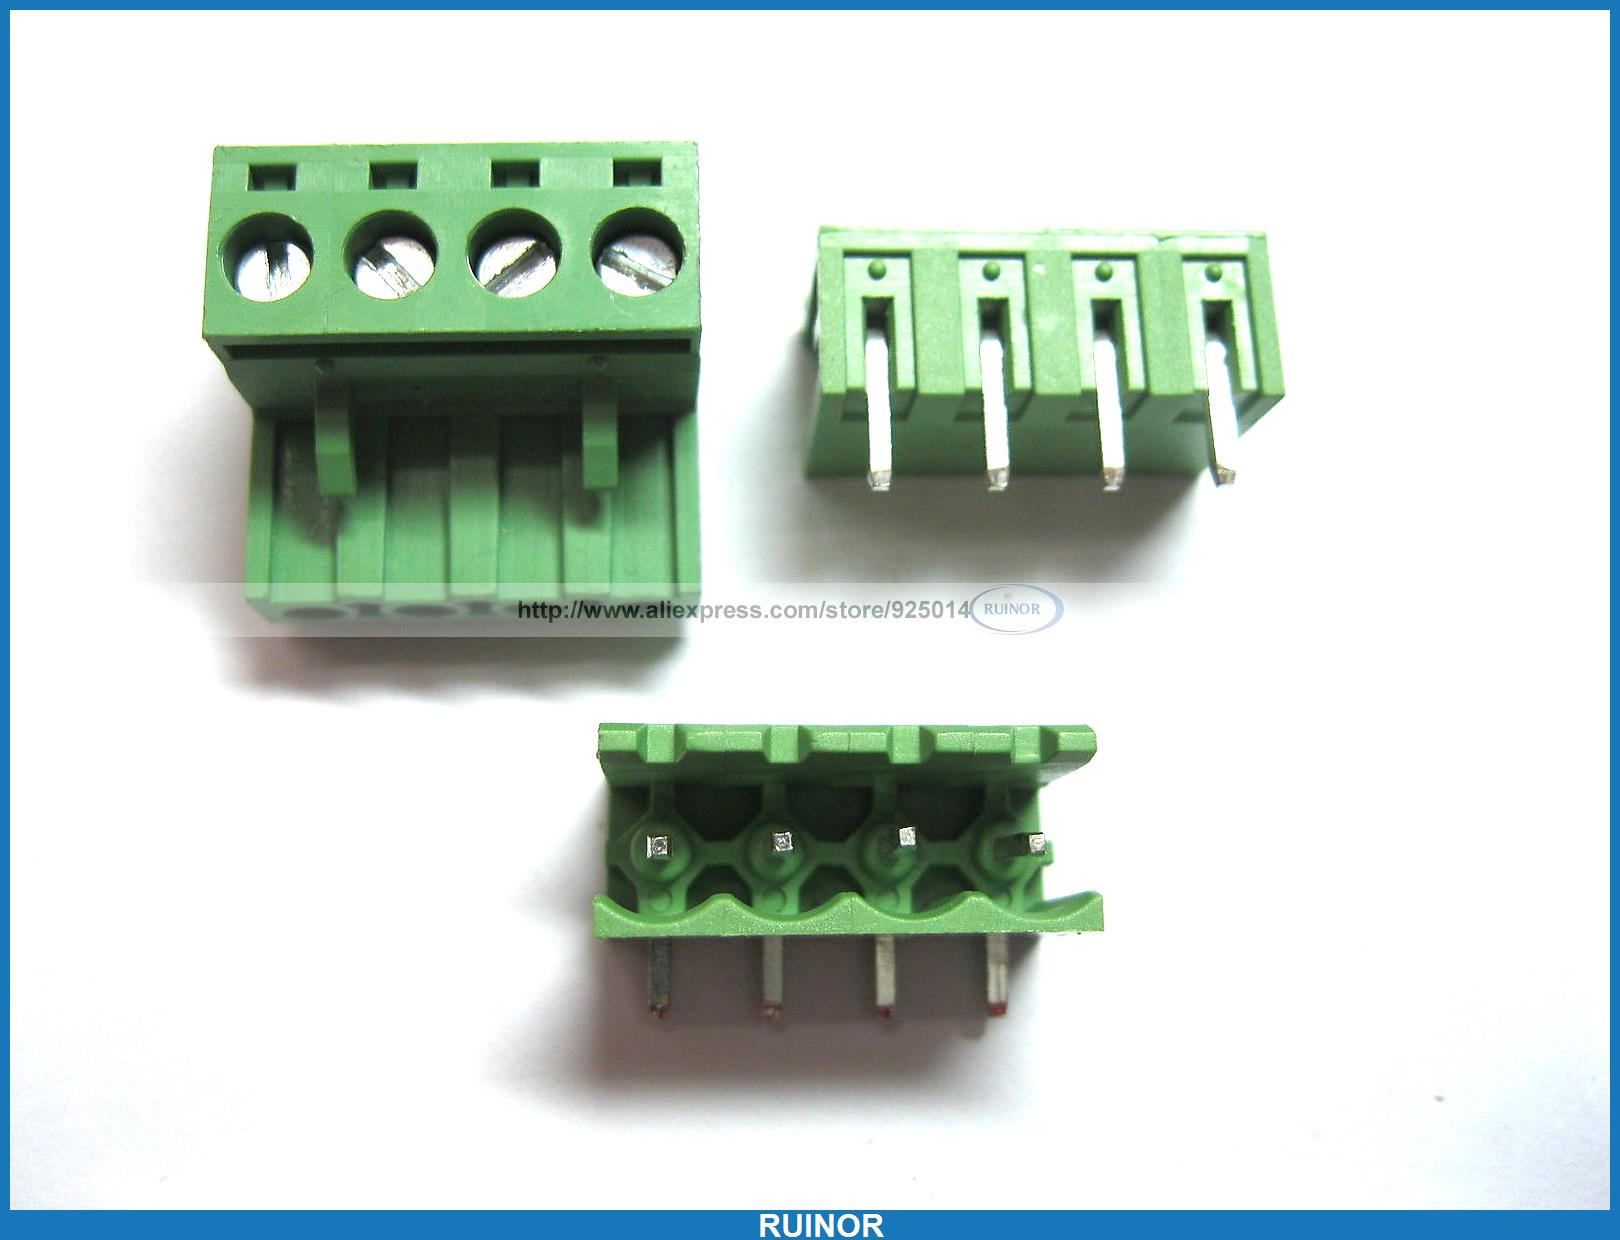 50 Pcs 5 08mm Angle 4 Pin Screw Terminal Block Connector Pluggable Type Green cam стульчик для кормления smarty pop cam салатовый bebe amore mio